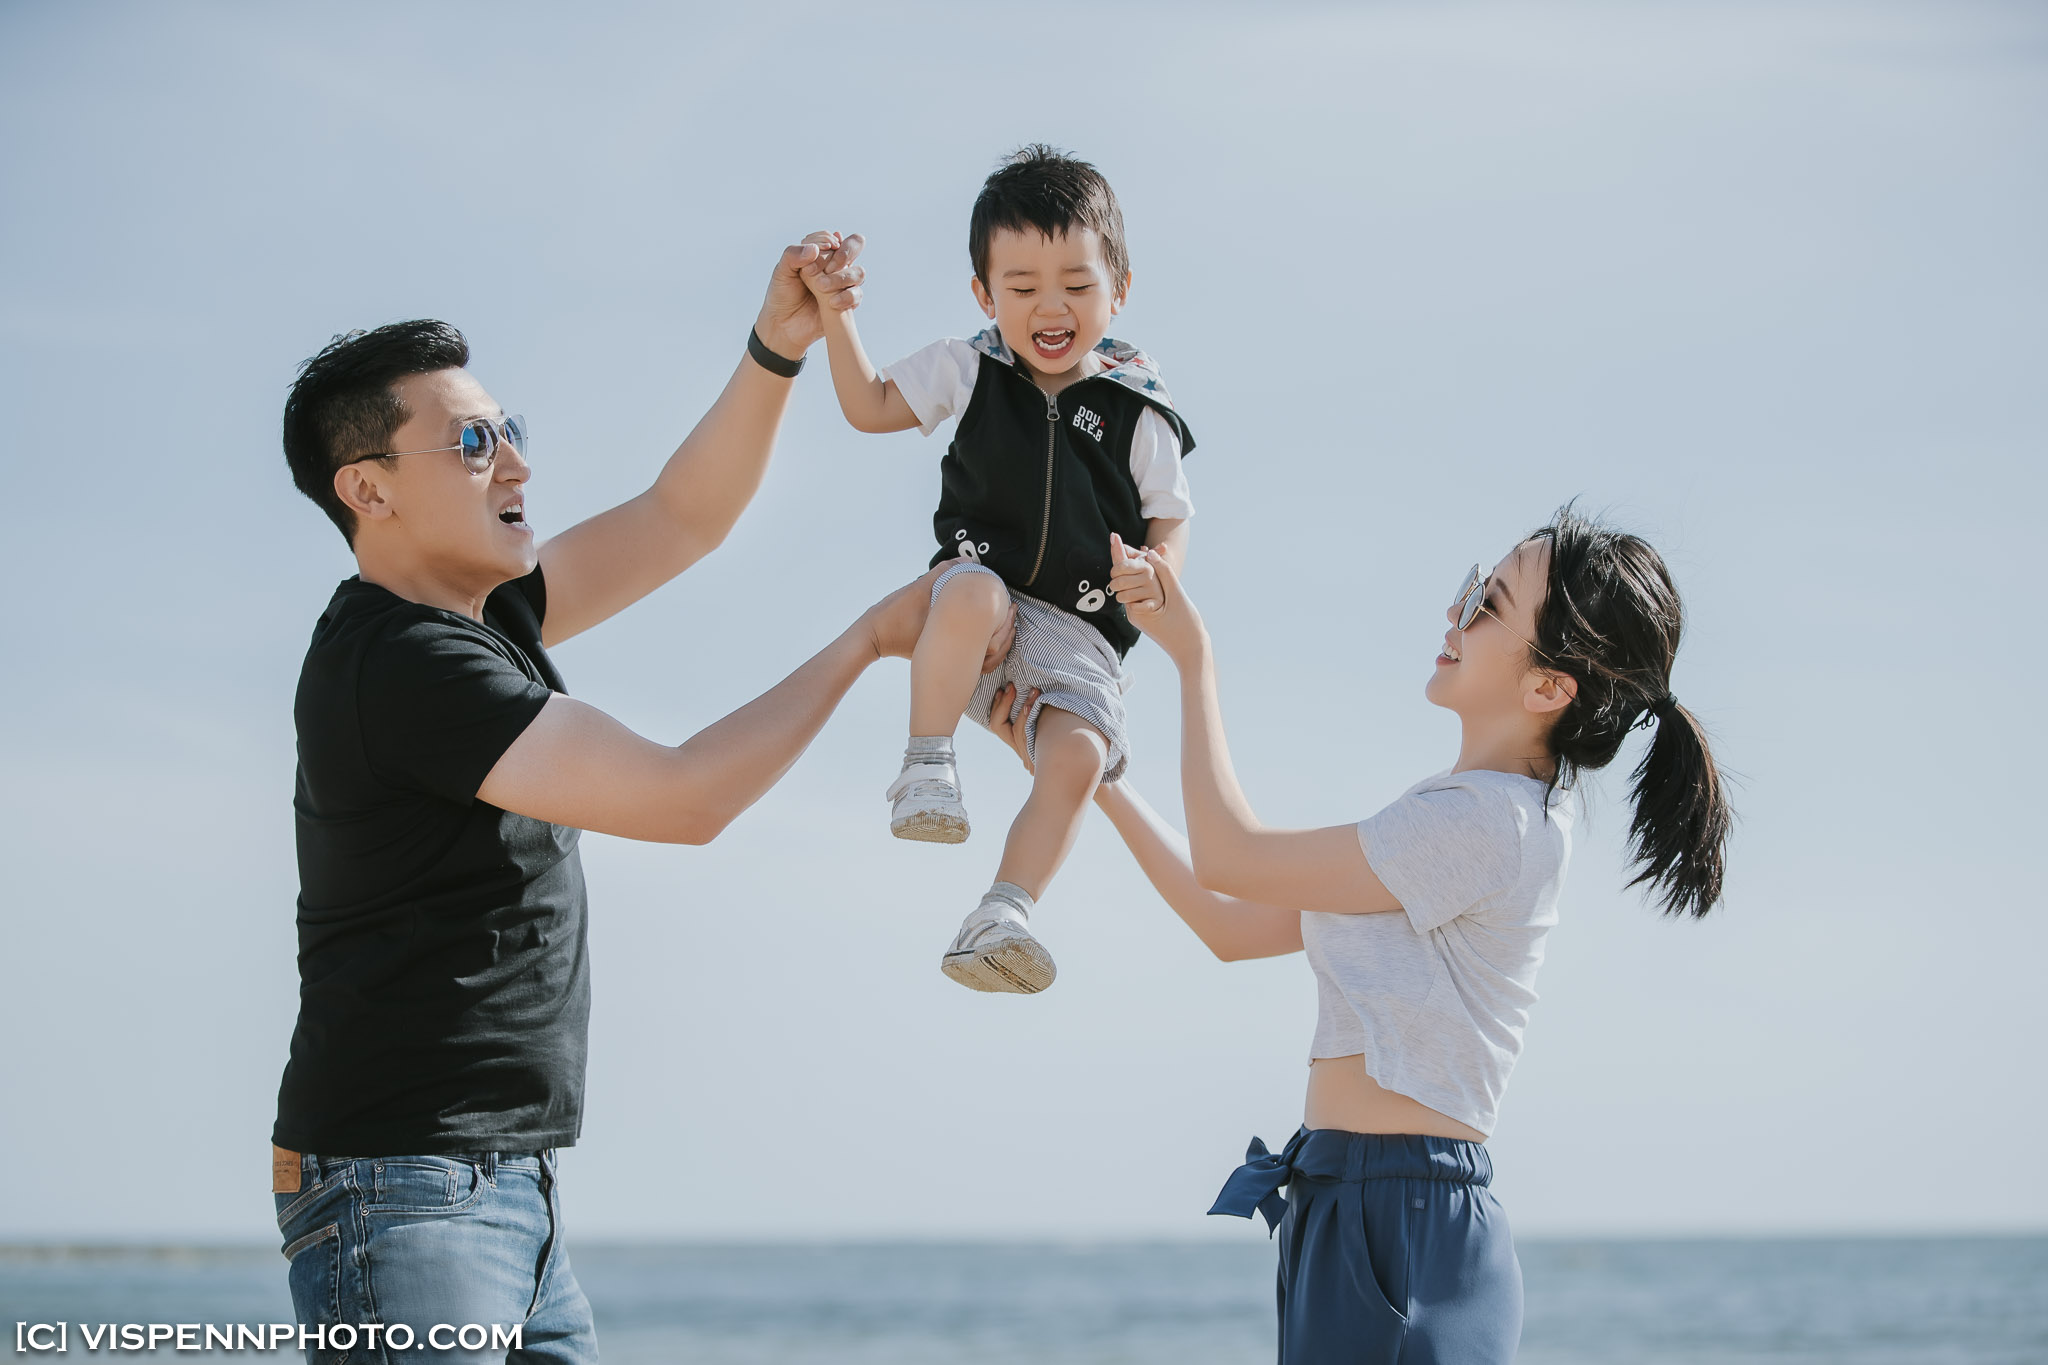 Melbourne Newborn Baby Family Photo BaoBao VISPENN 墨尔本 儿童 宝宝 百天照 满月照 孕妇照 全家福 KIDS MayZhang 1367 VISPENN